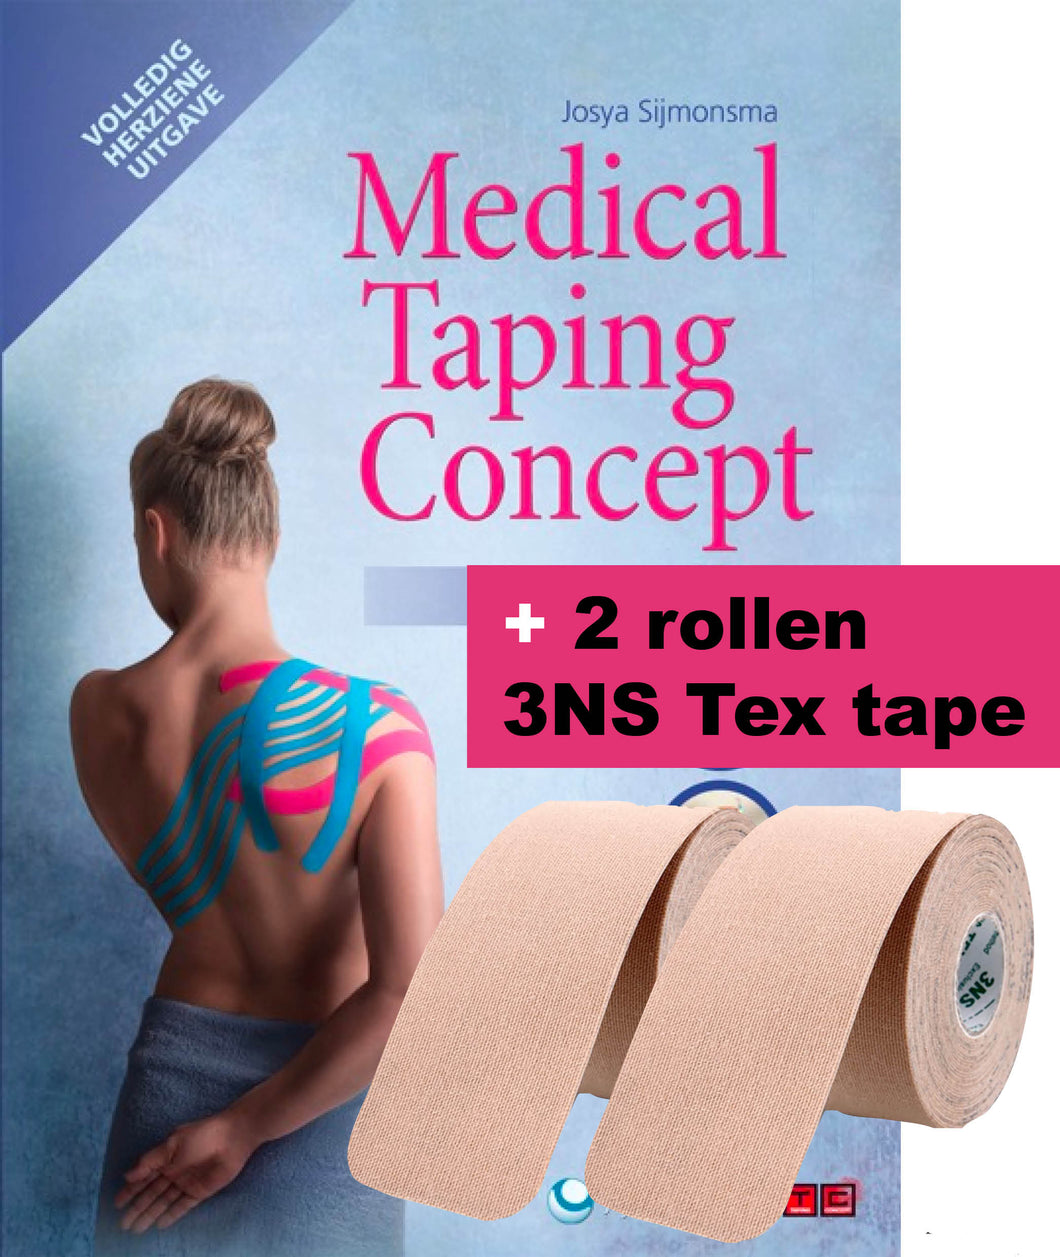 Medical Taping Concept Manual + 2 rollen 3NS Tex tape